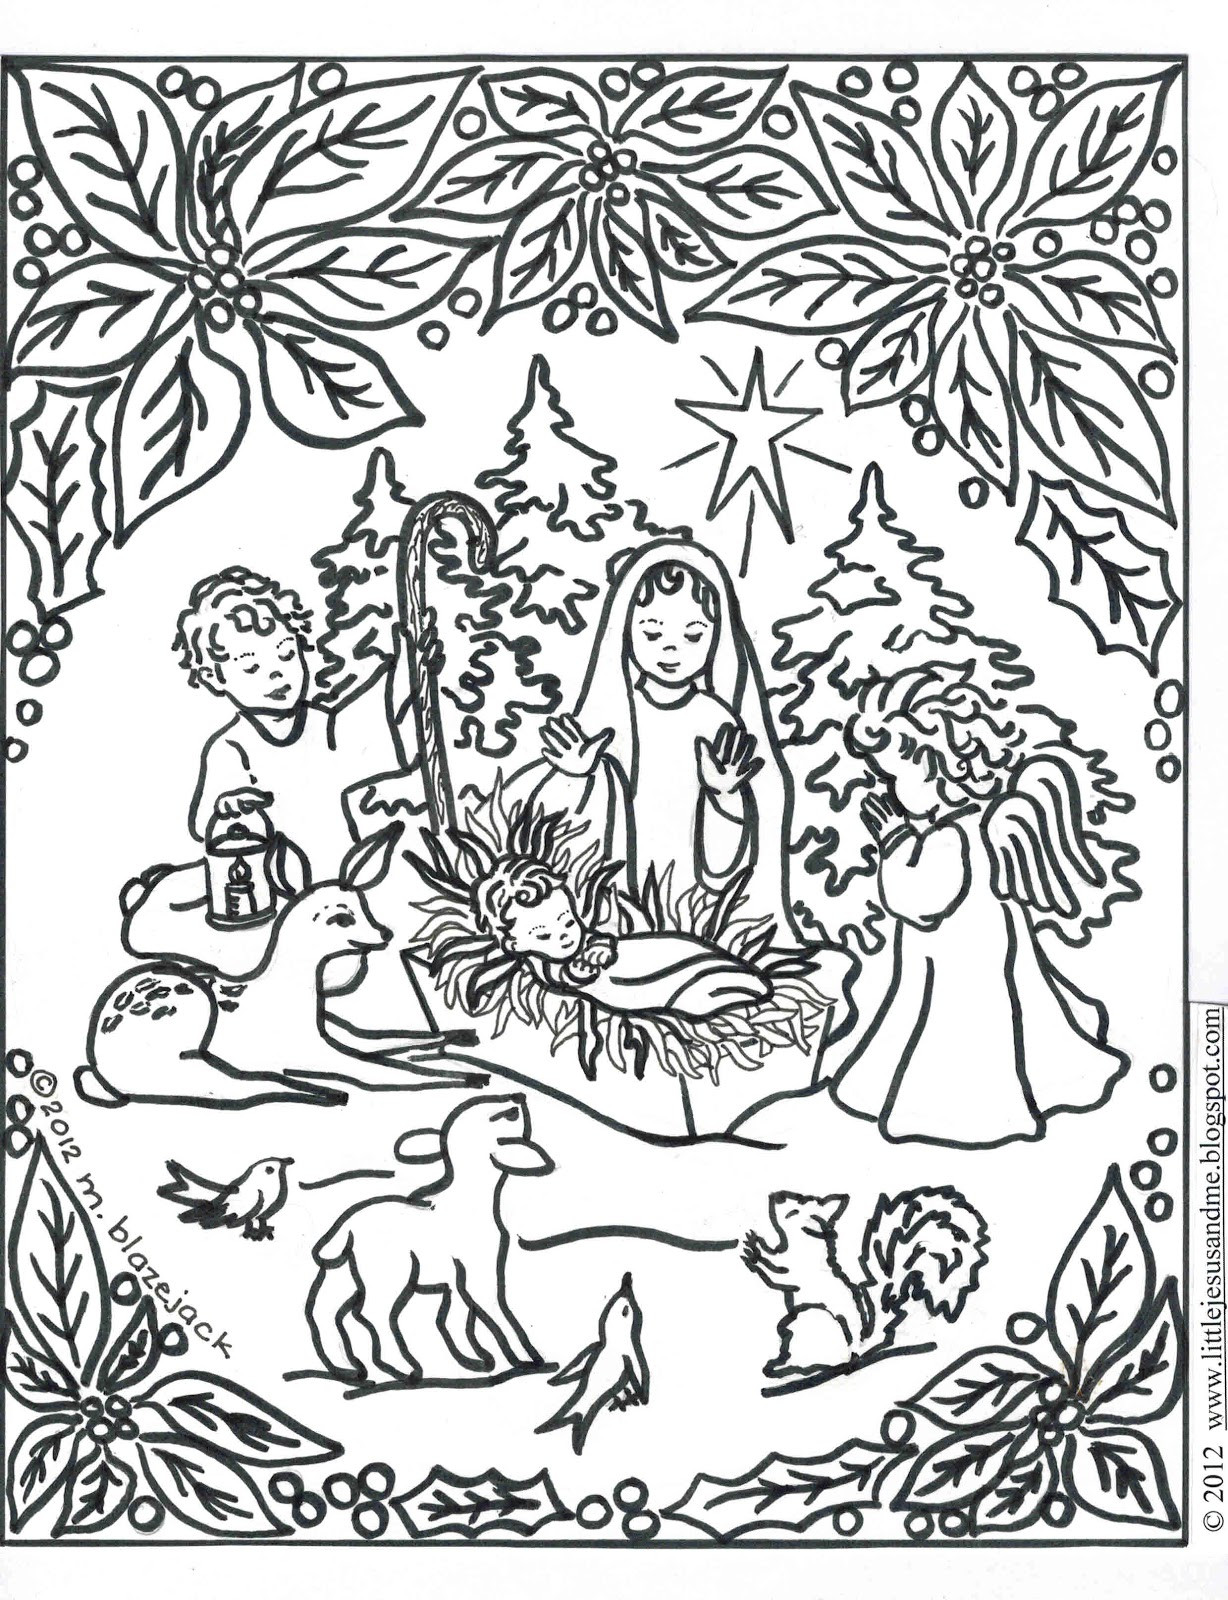 Christmas Coloring Pages That Are Hard With Collection Of Download Them And Try